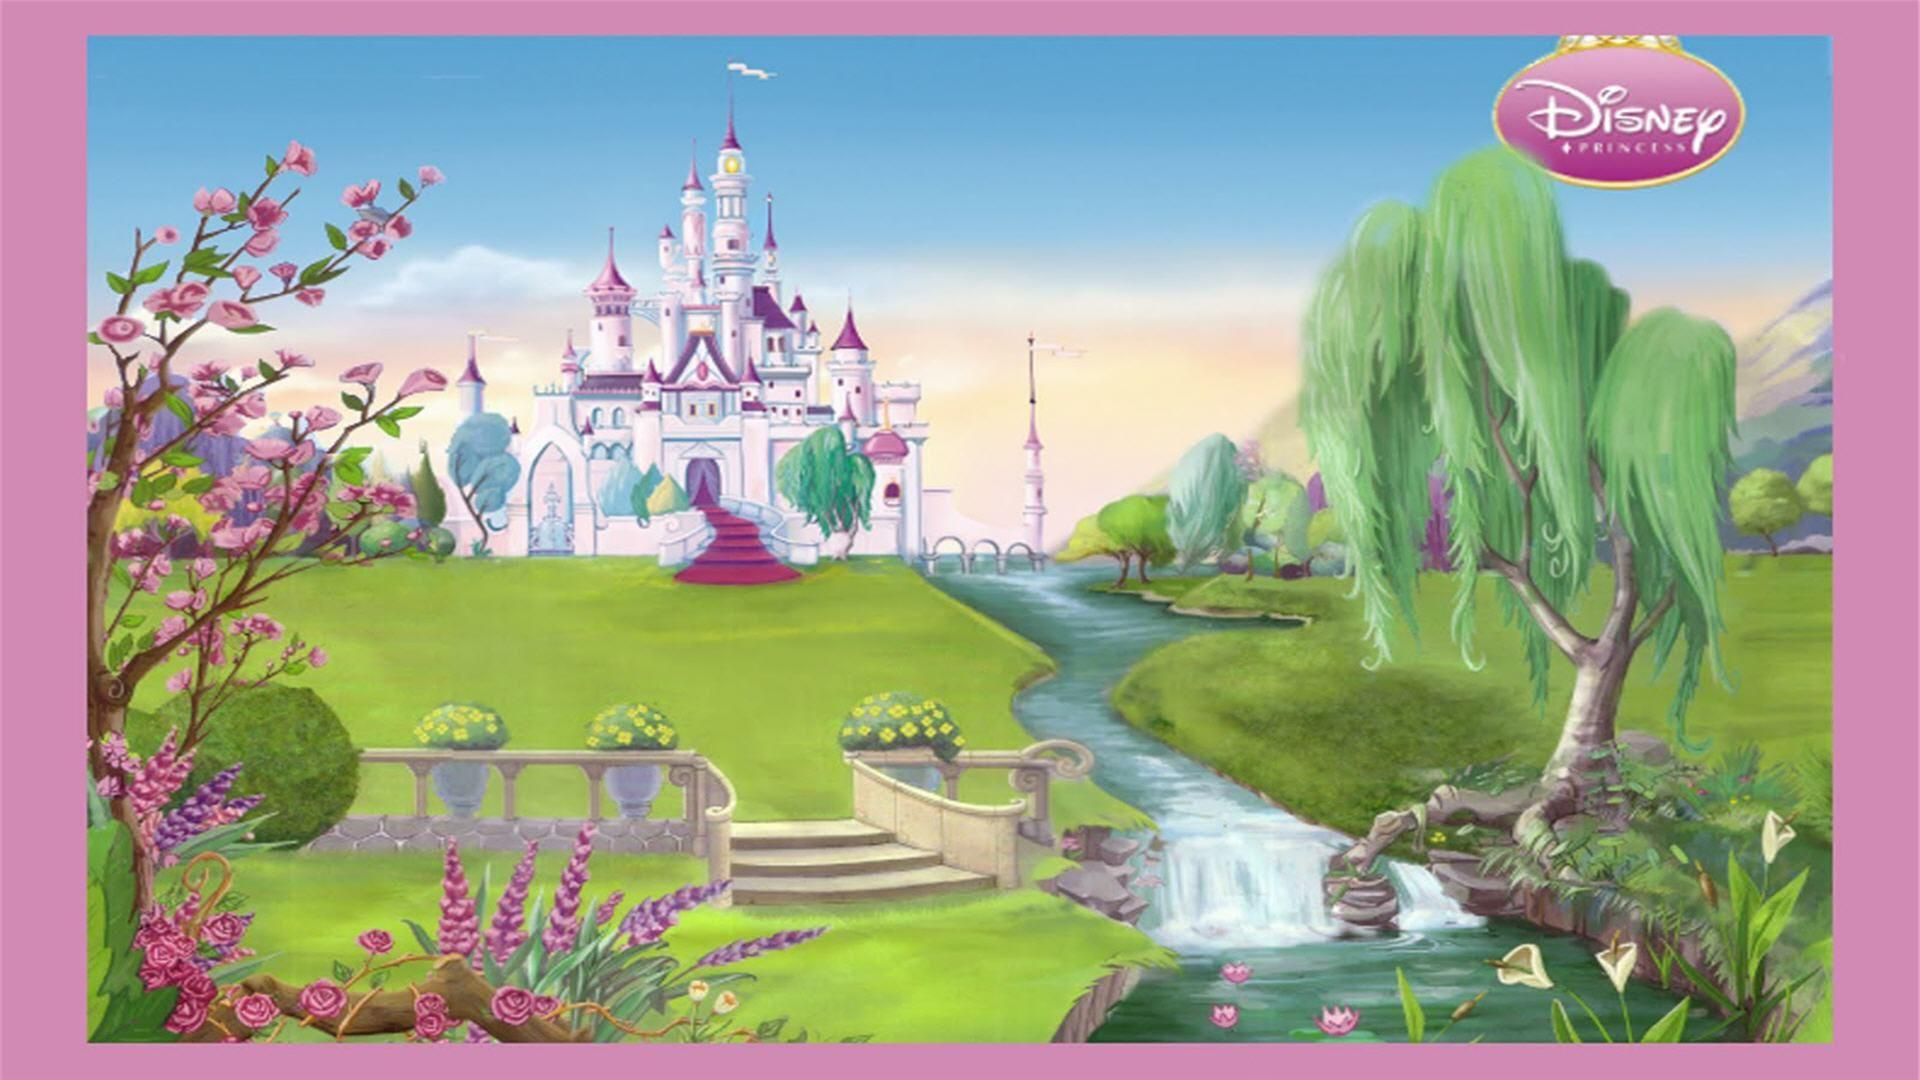 Disney Princess Castle Wallpapers Wallpaper Cave